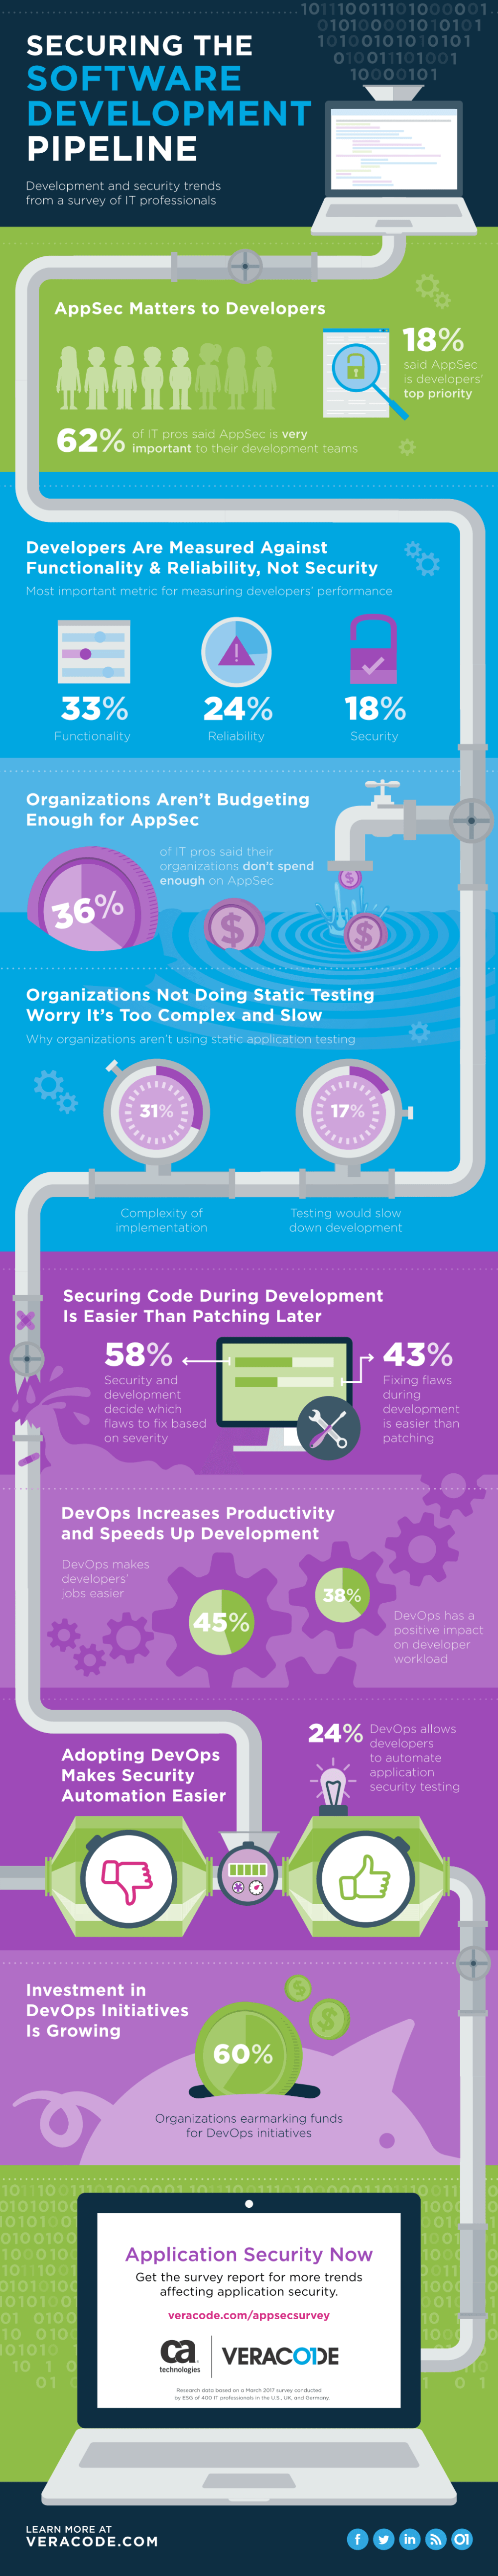 Securing the Software Development Pipeline Survey Infographic